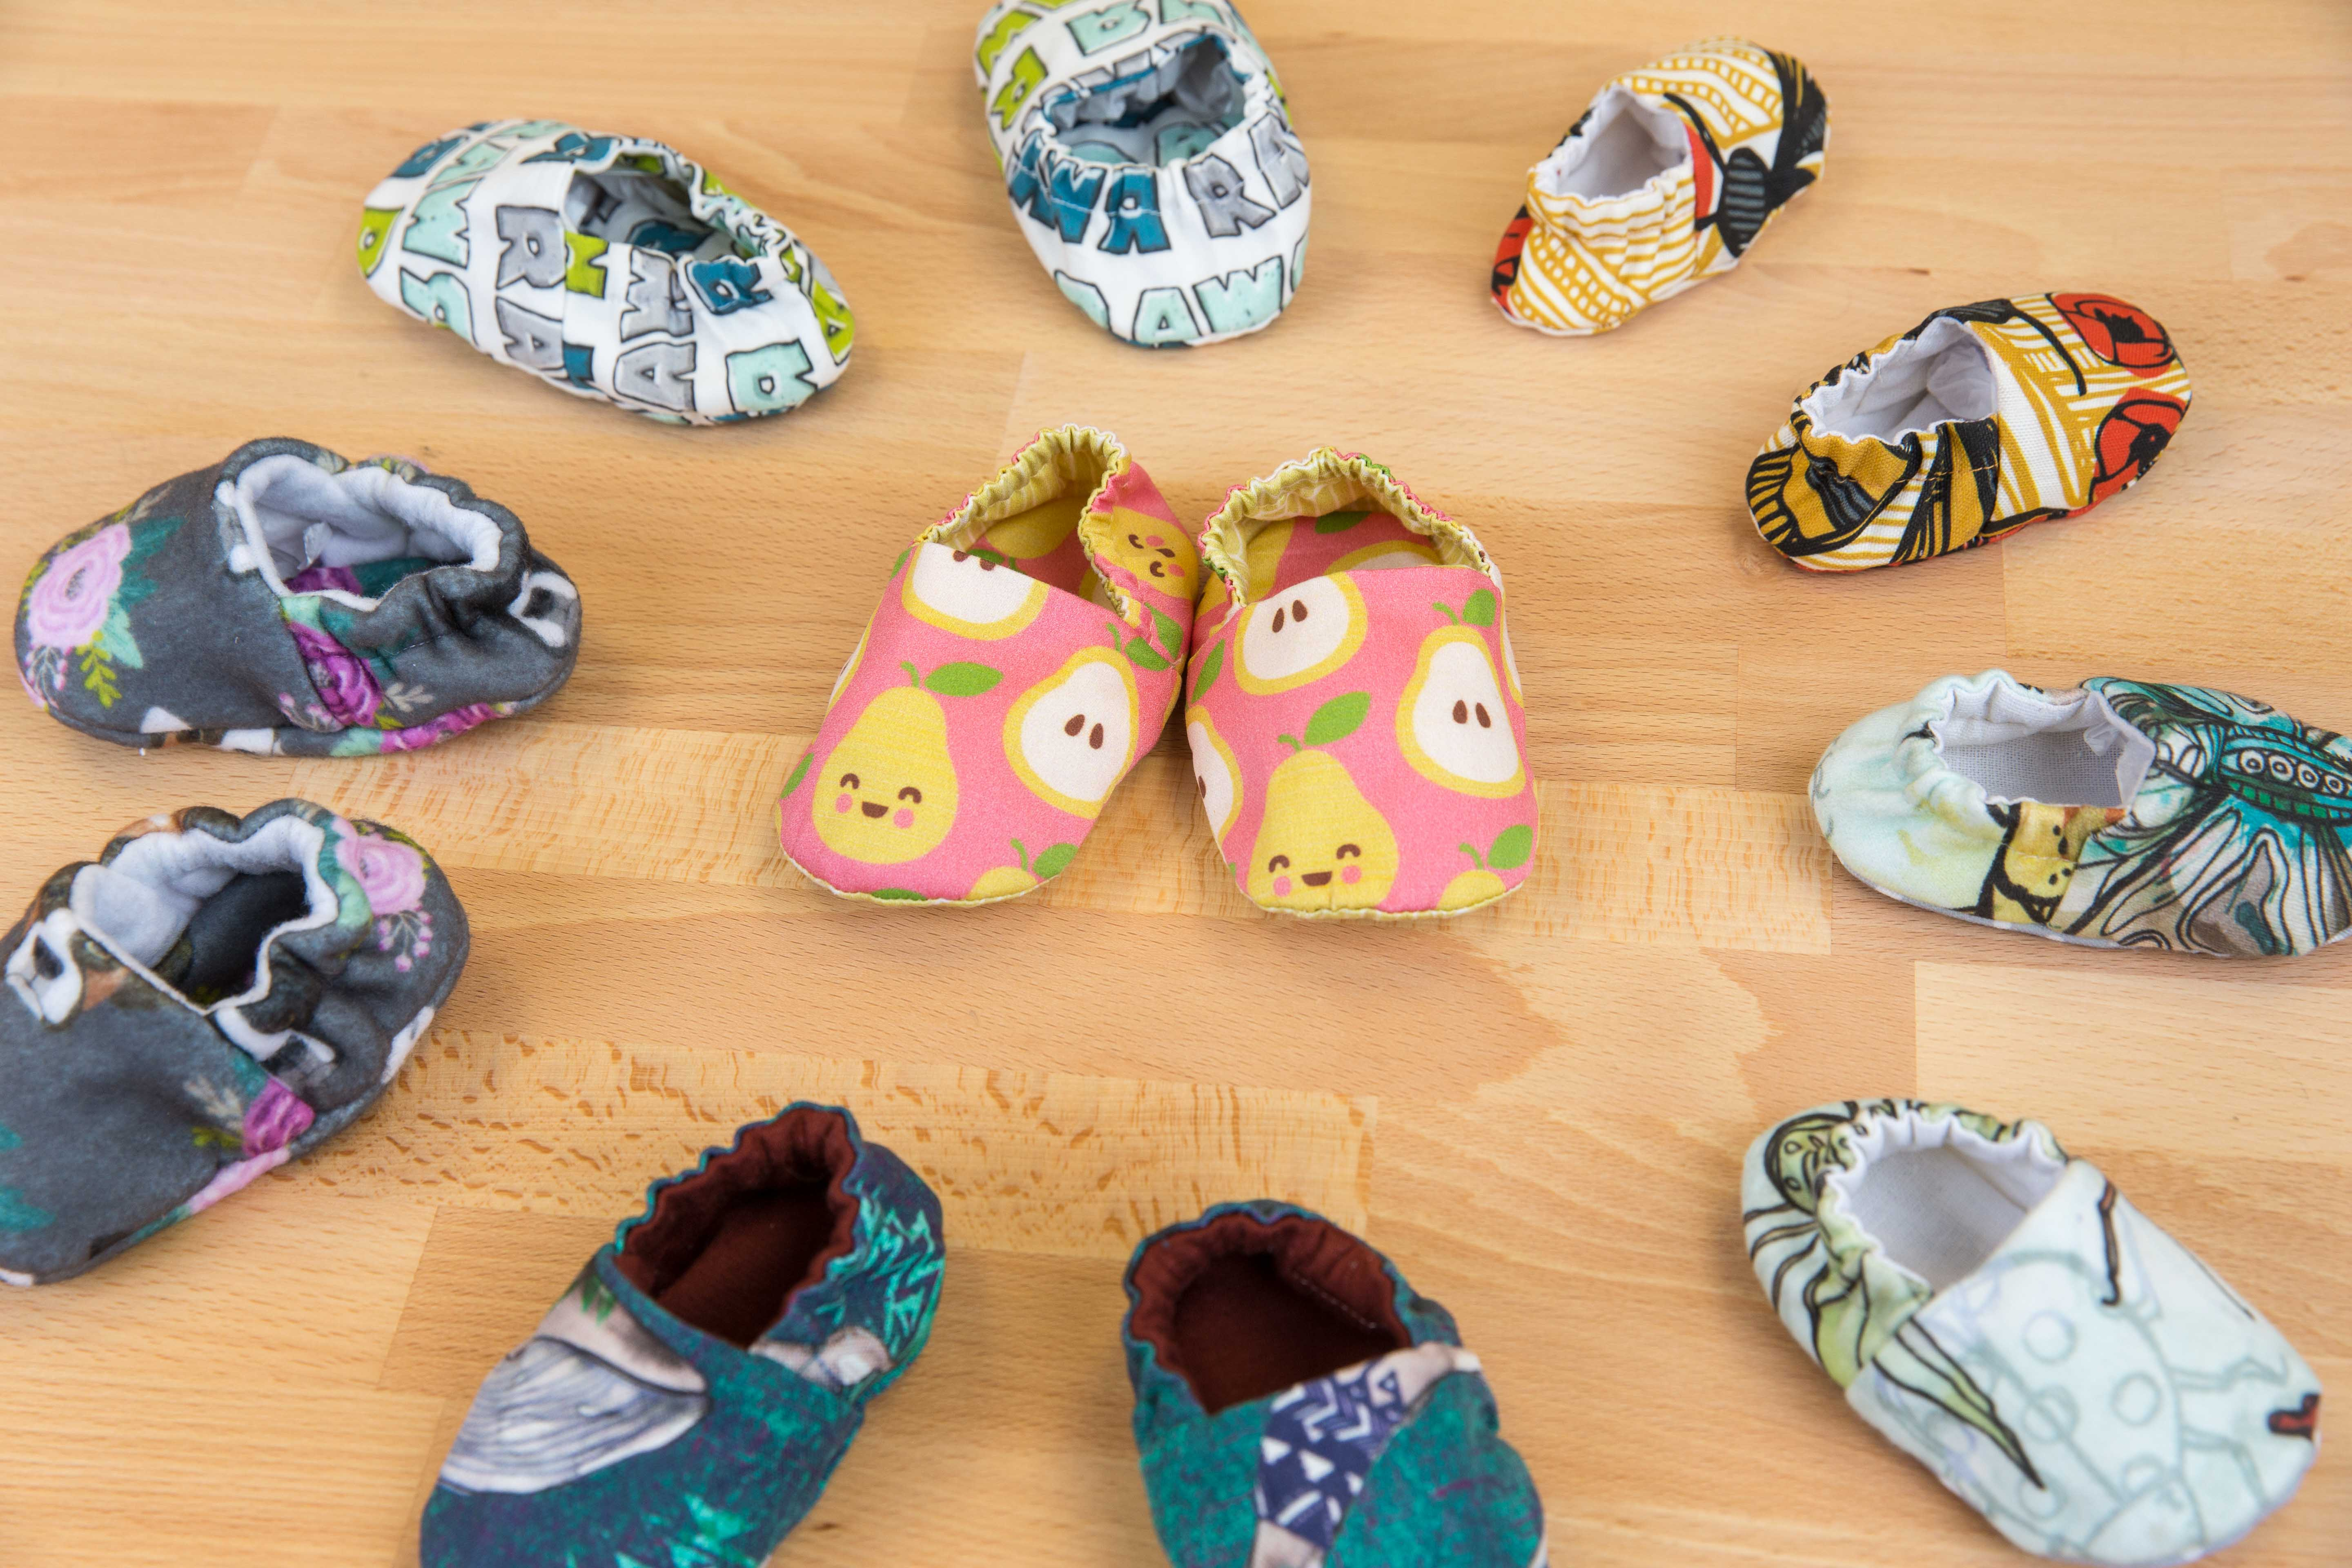 Babys Woven Sandals Simple Shoes Anti-slip Soft Sole Toddler Shoes Kids Sneaker